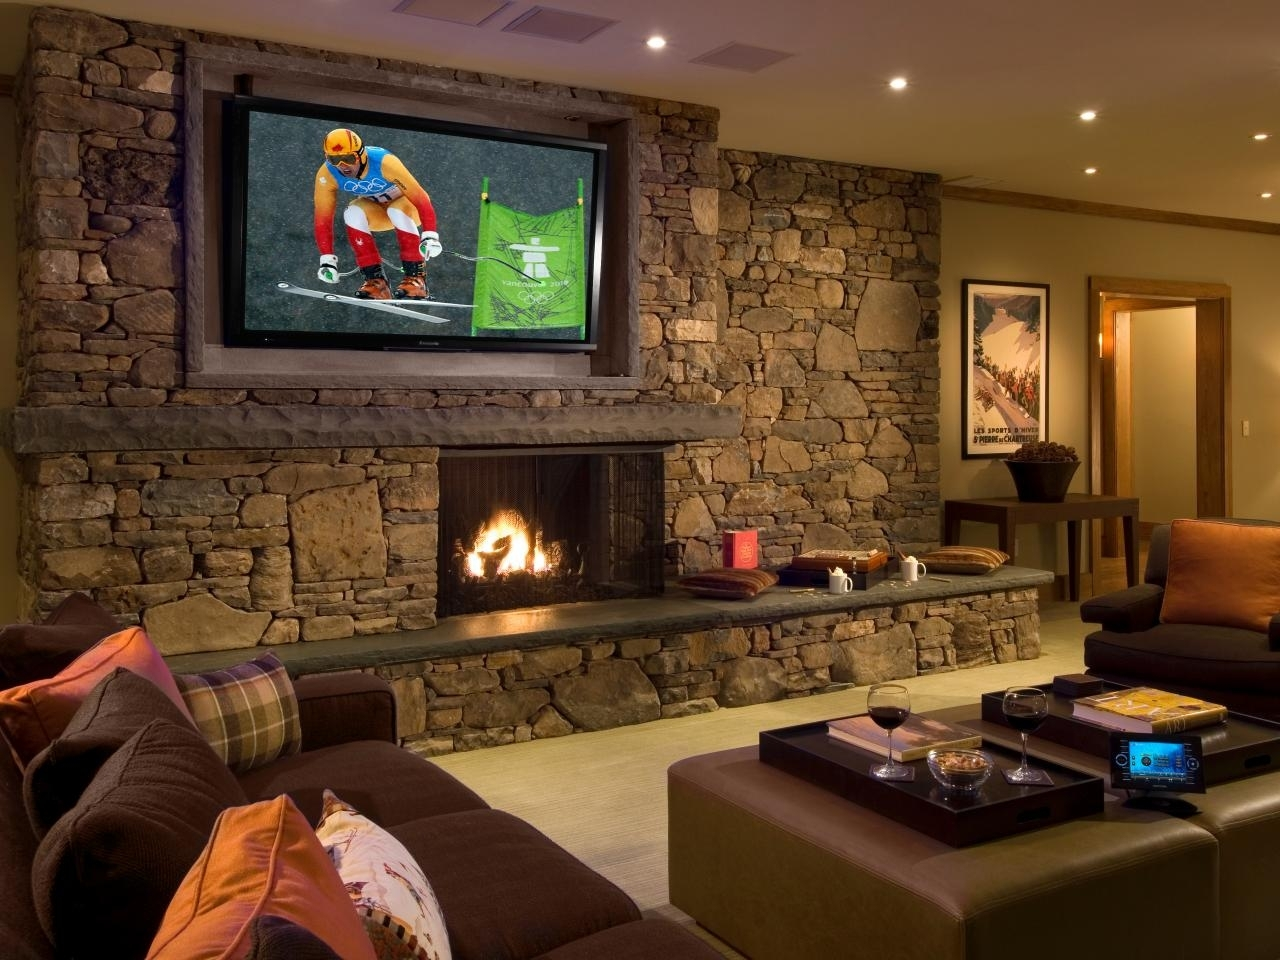 Basement Home Theaters And Media Rooms: Pictures, Tips & Ideas | Hgtv Intended For Latest Wall Accents For Media Room (View 6 of 15)